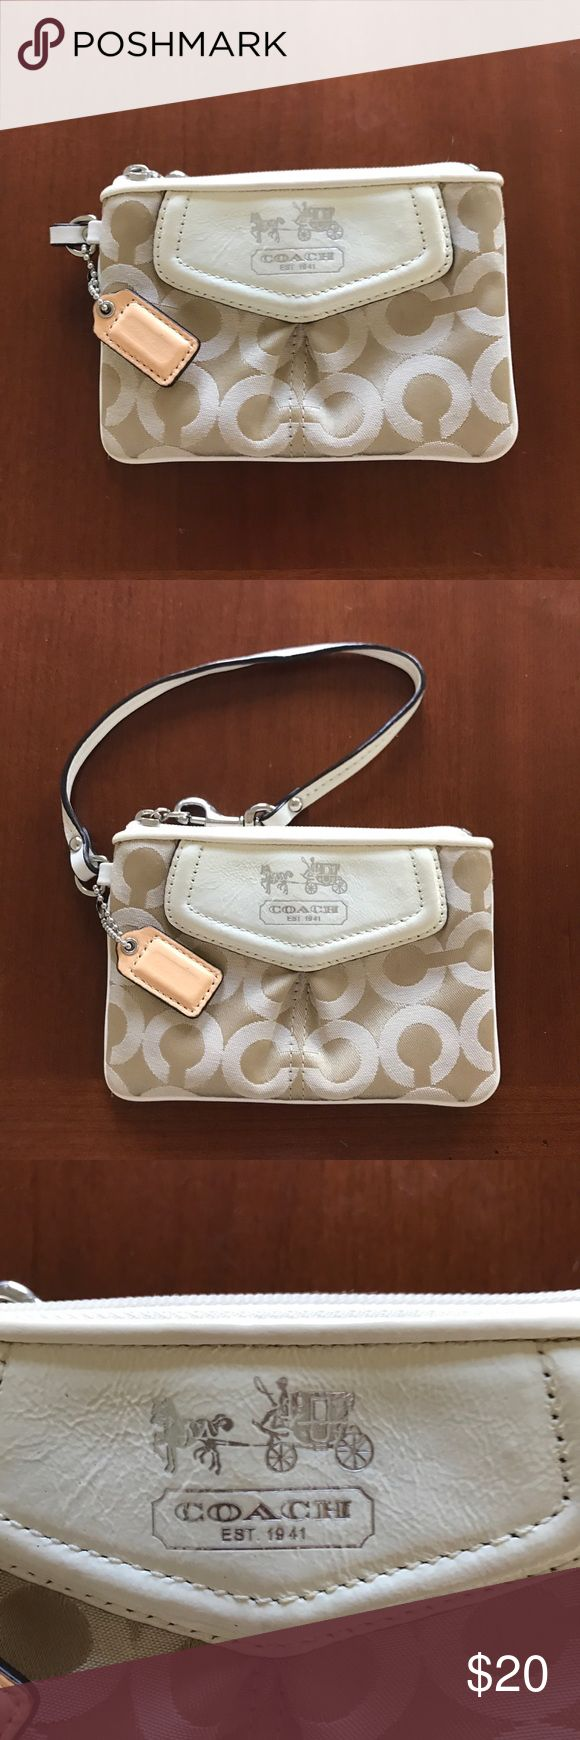 Coach wristlet Coach wristlet   Approximately 4x6 .Great for credit cards, lip gloss, keys...  wonderful condition Coach Bags Clutches & Wristlets